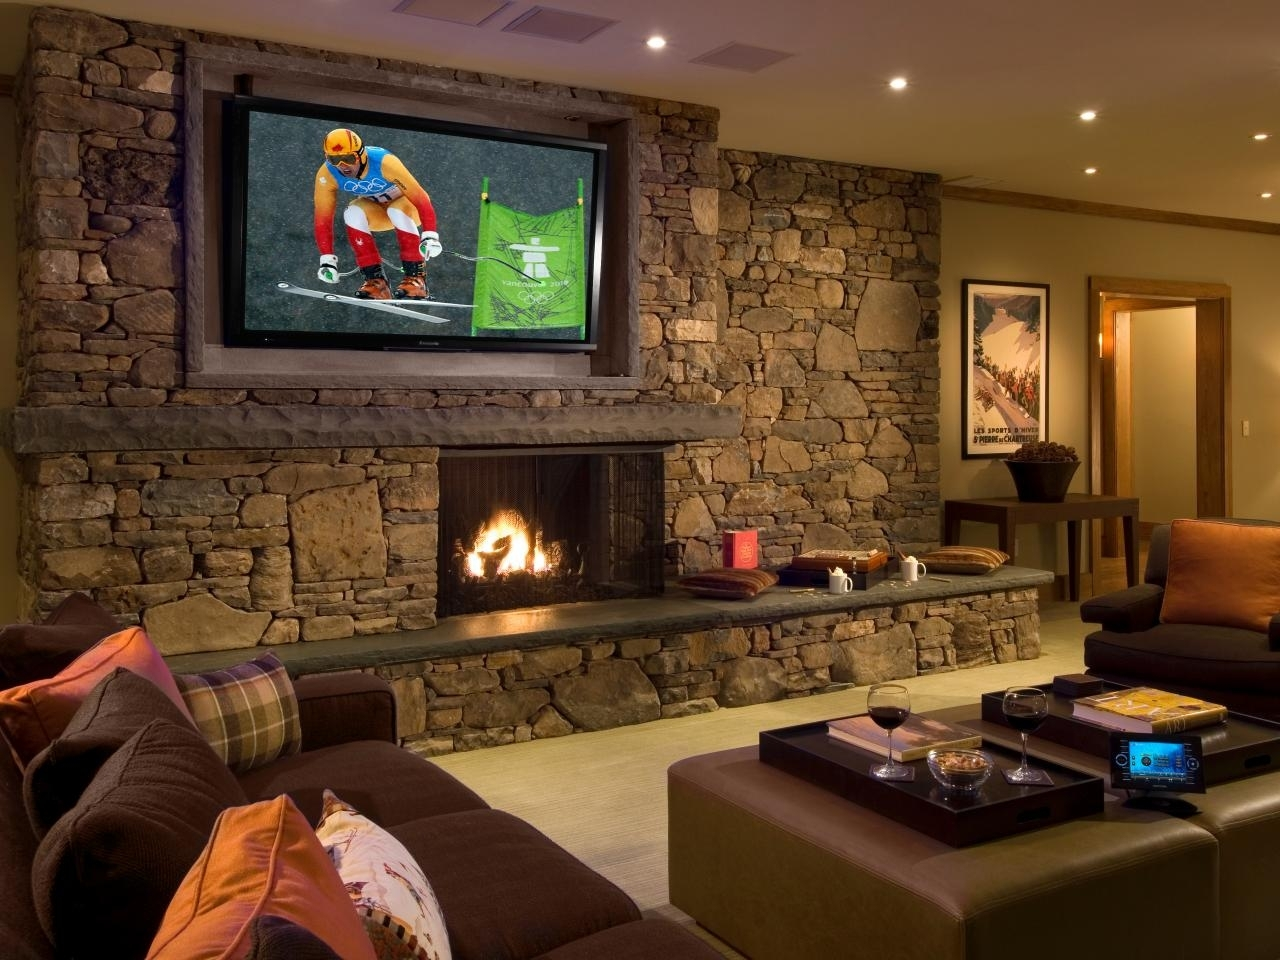 Basement Home Theaters And Media Rooms: Pictures, Tips & Ideas | Hgtv Intended For Latest Wall Accents For Media Room (Gallery 6 of 15)